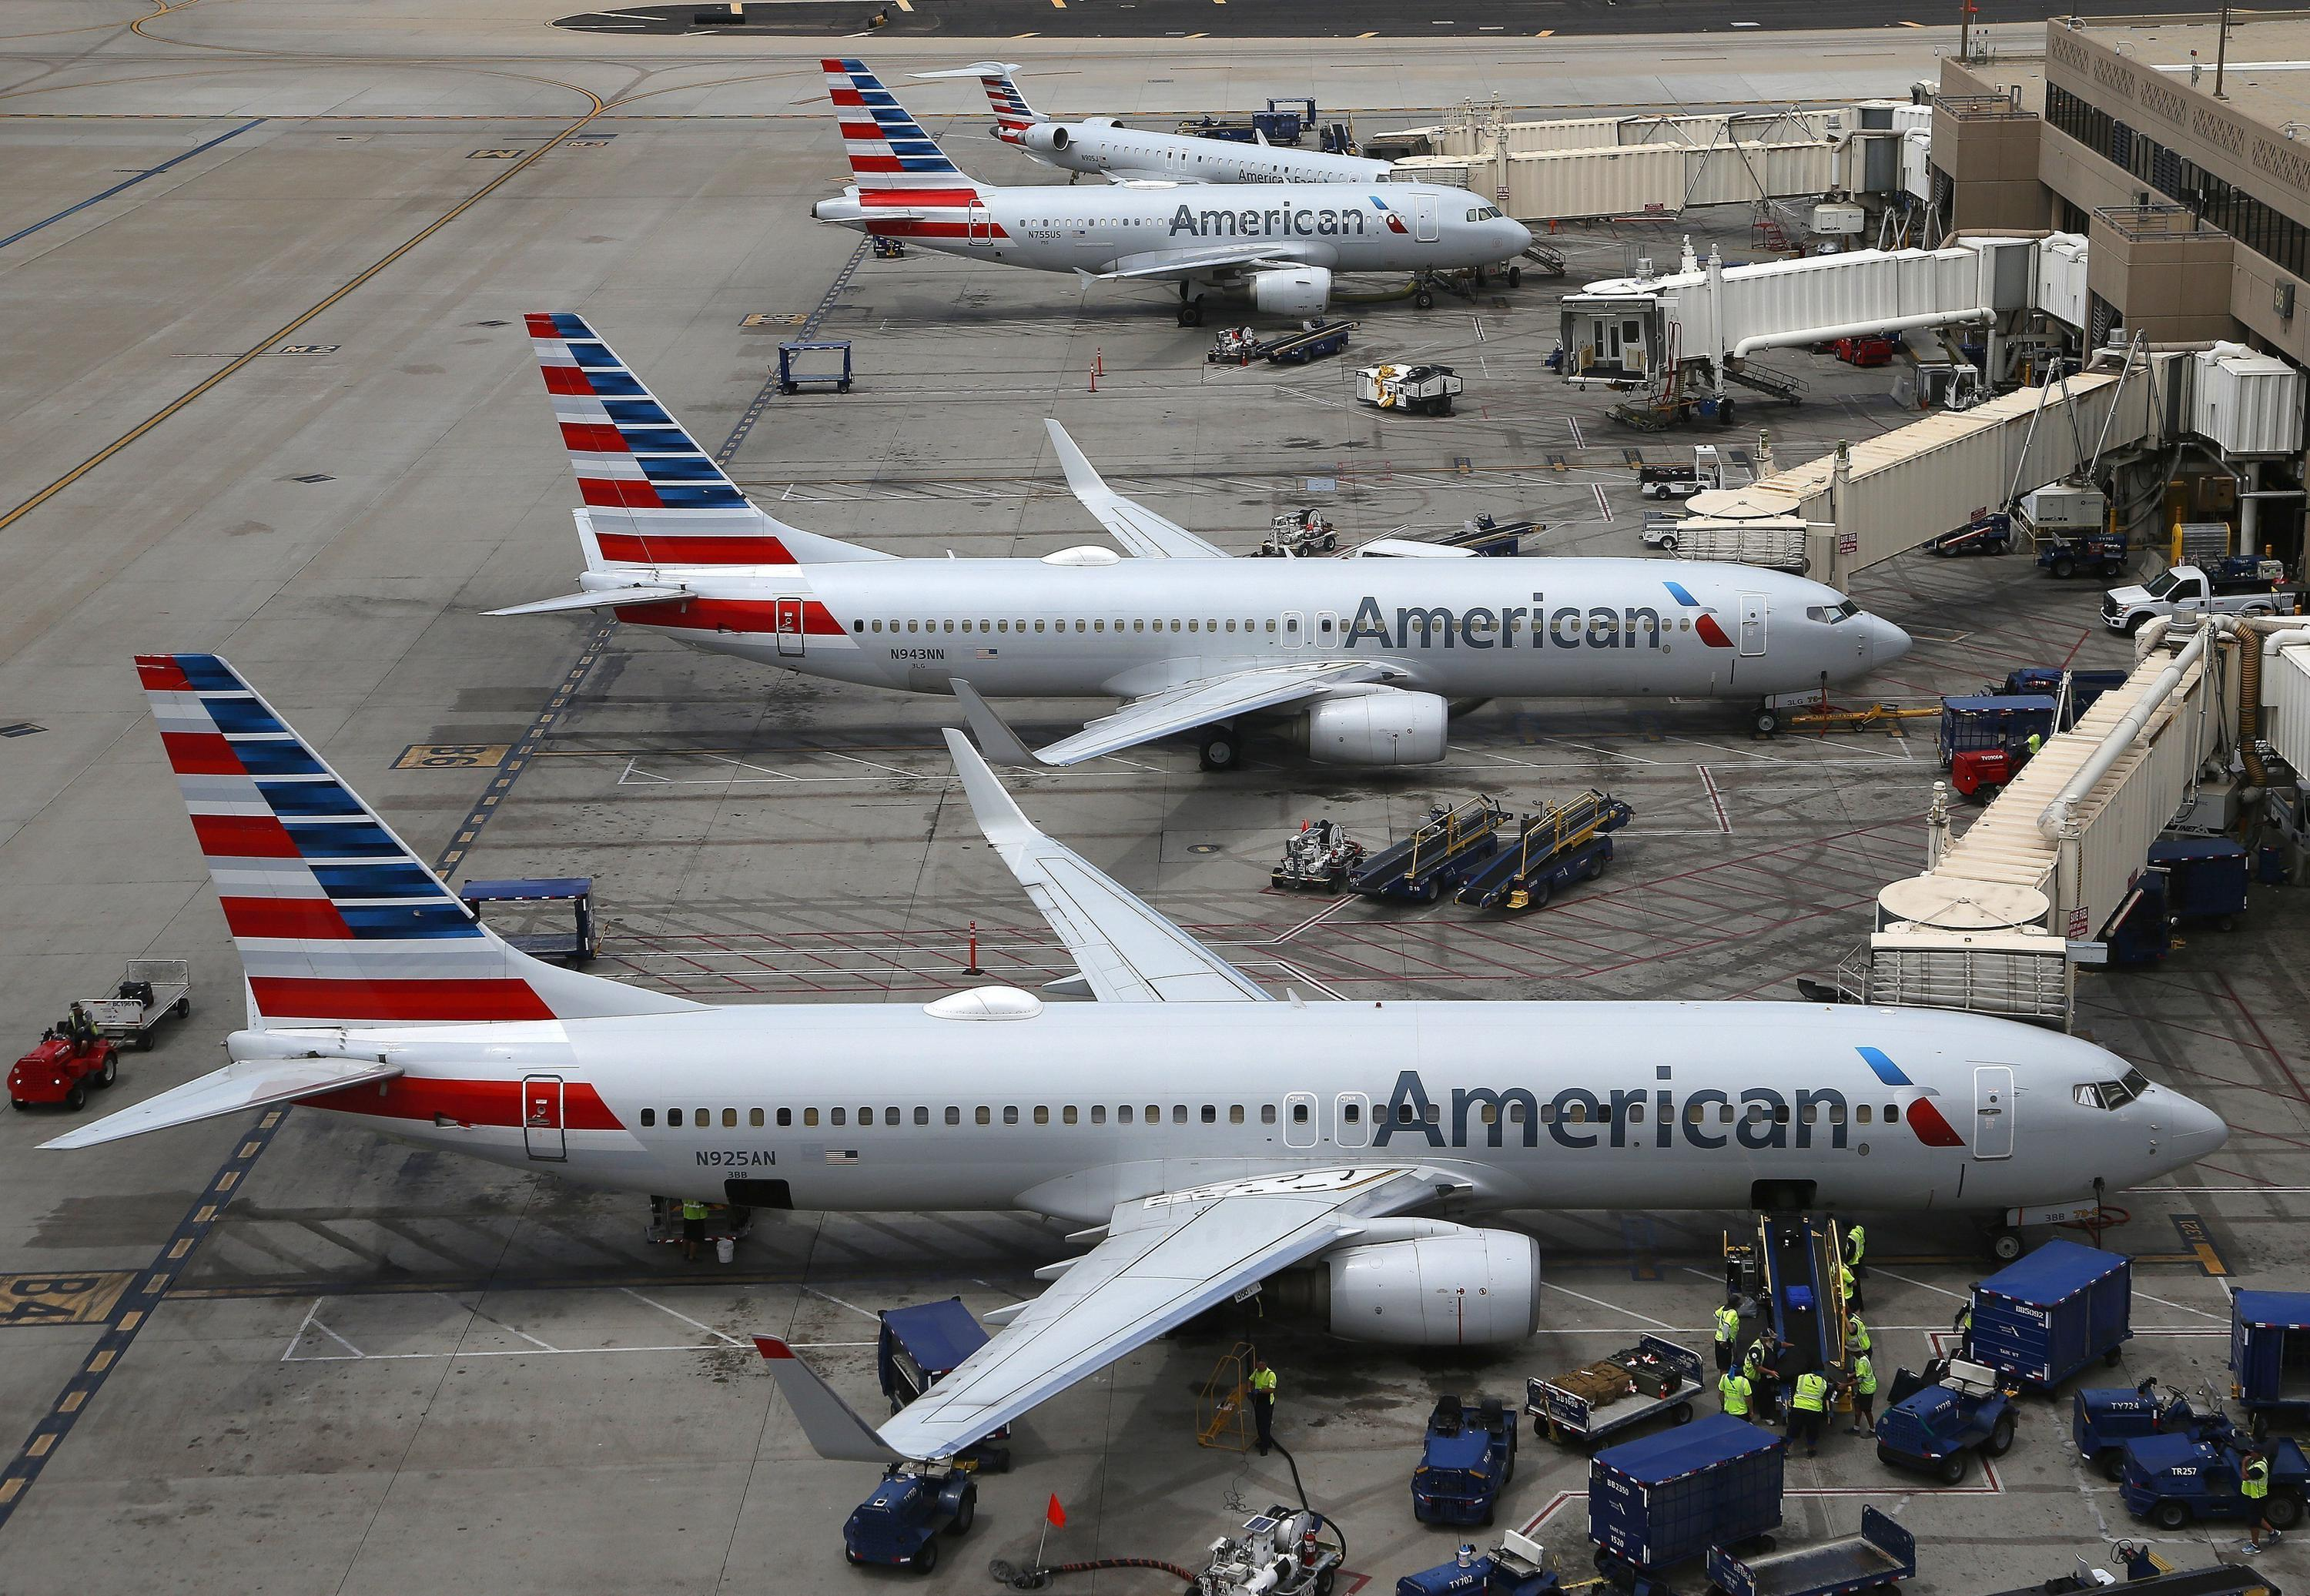 American Airlines posts $1.25 billion loss, delays new jets